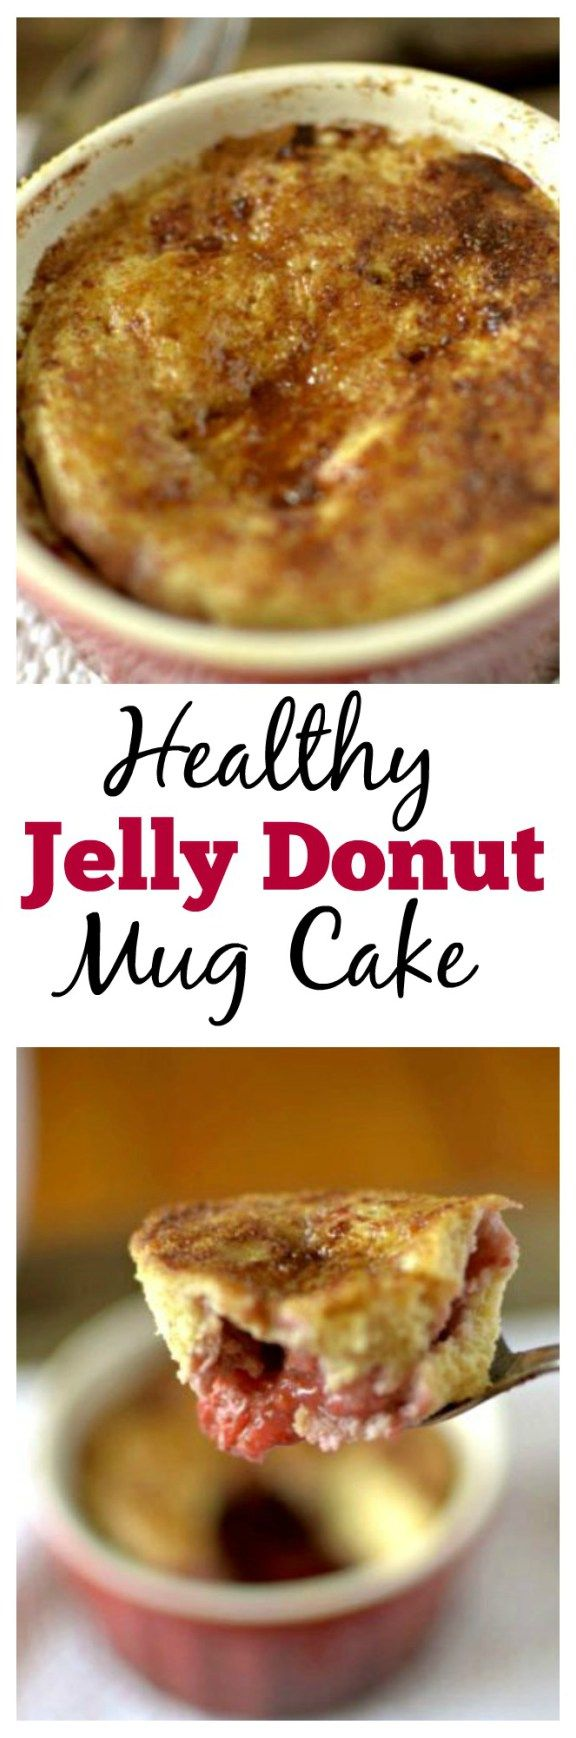 This Healthy Jelly Donut Mug Cake takes seconds to make and tastes like an actual jelly donut! This Mug cake is paleo, gluten free and has a vegan option.